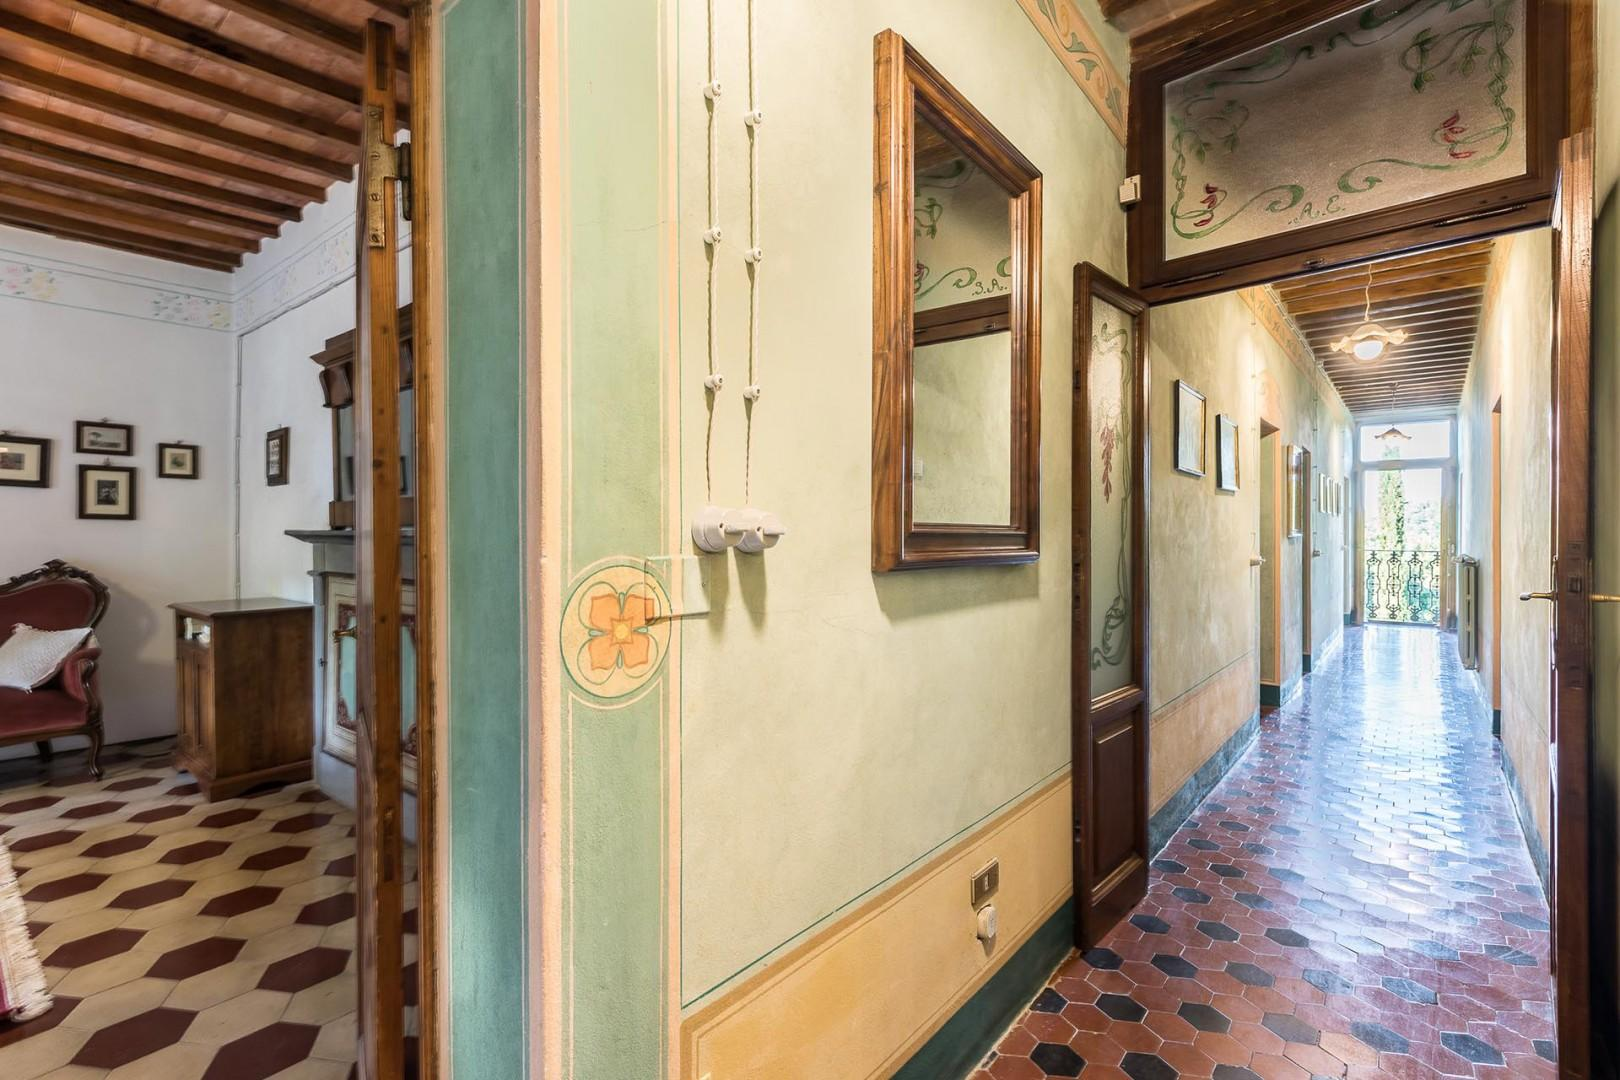 Tiled hallway on the 2nd floor with a French balcony door at the end with beautiful views.